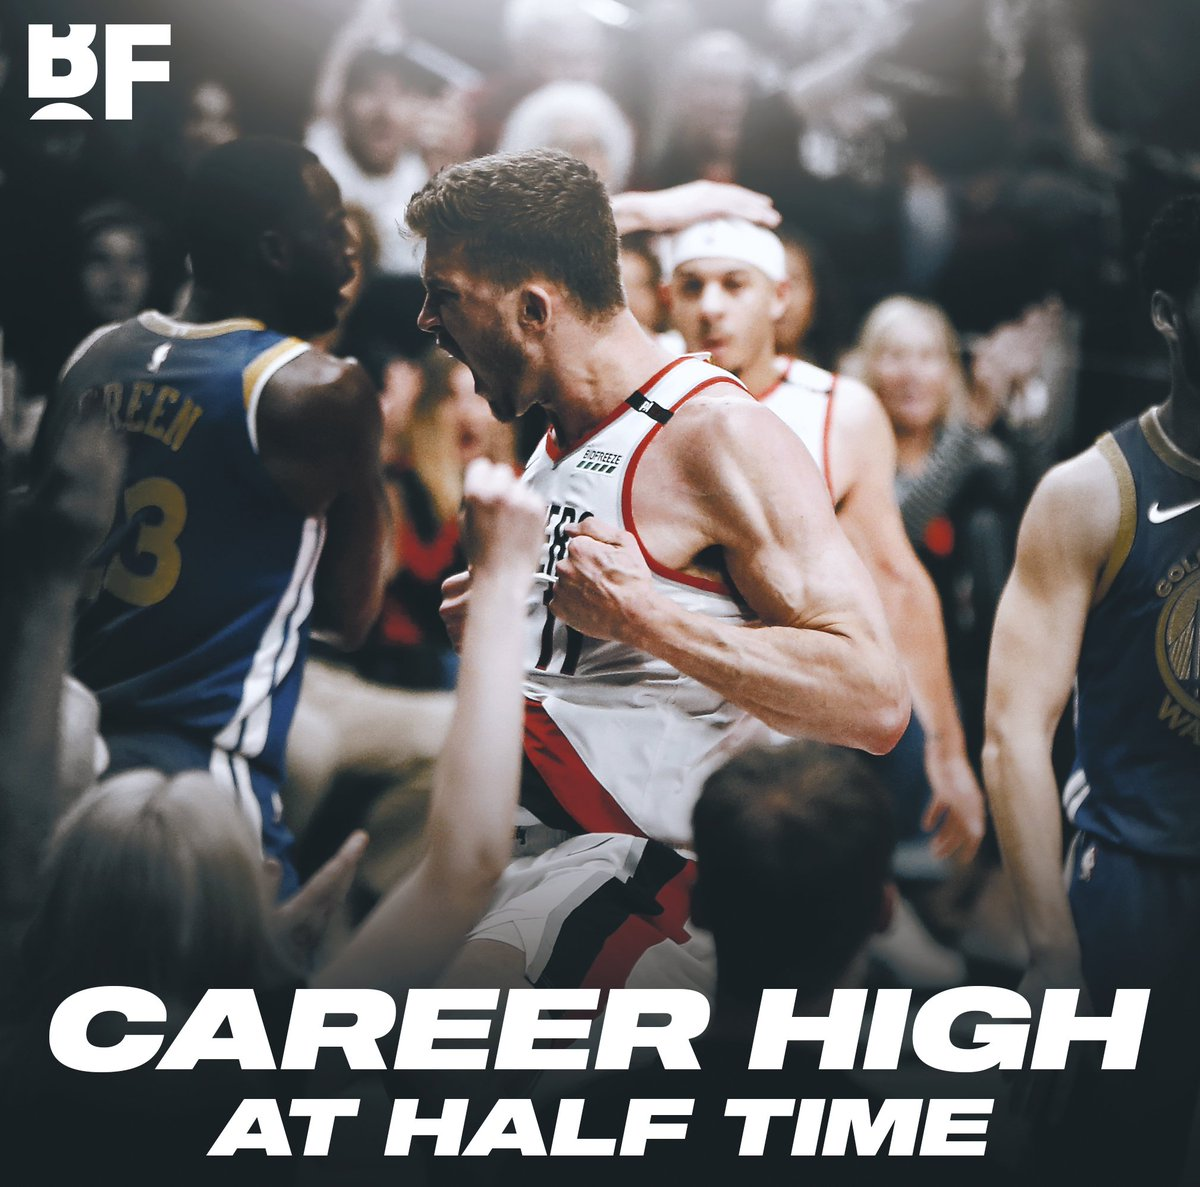 . @MeyersLeonard11 already has a CAREER HIGH 25 points, in the 1st half, against the BEST team in the world!